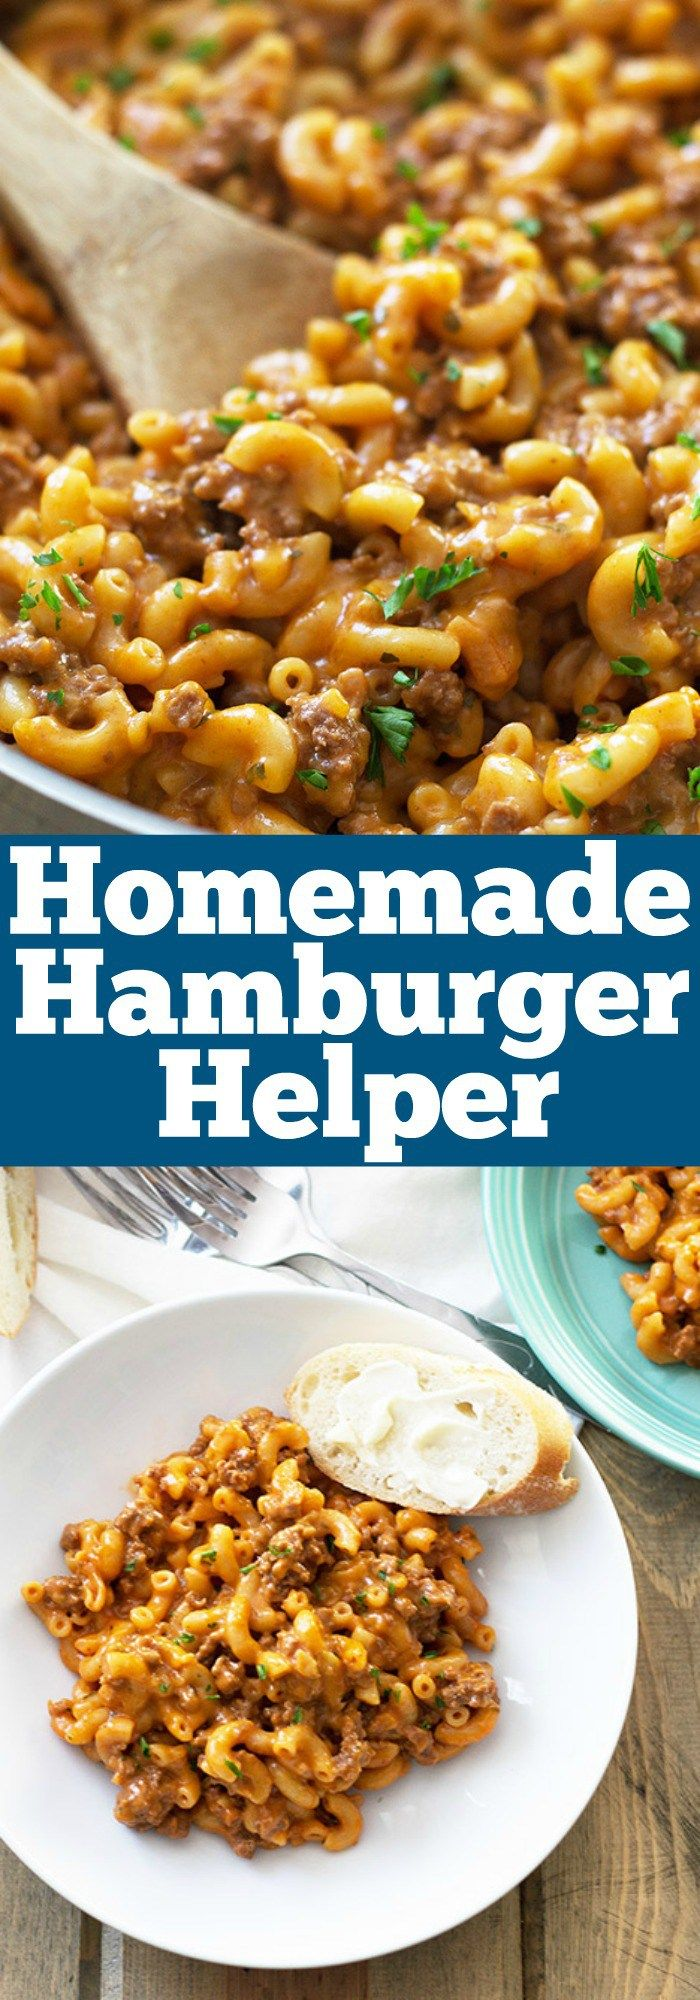 Homemade Hamburger Helper -just as quick and easy as the boxed stuff, but tastes way better!   countrysidecravings.com  Old glen rd